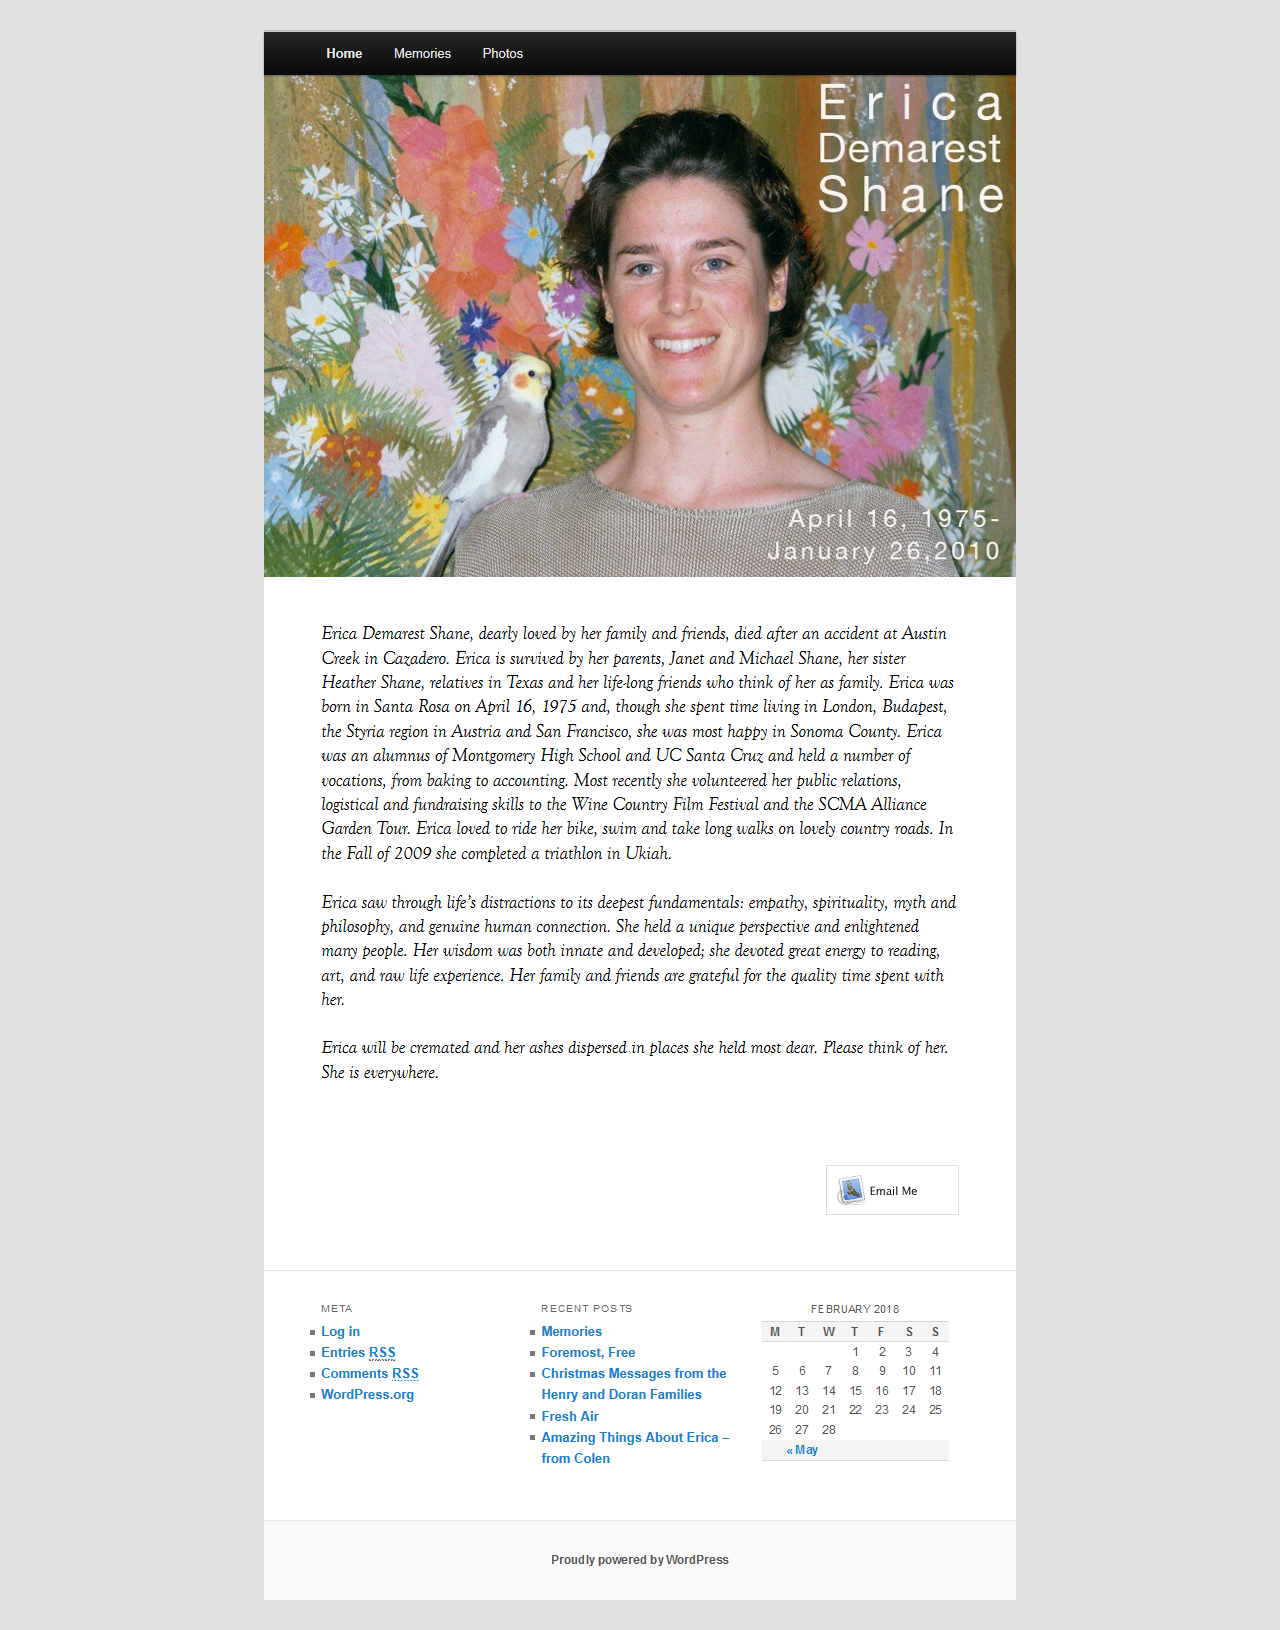 Image of ericashane.net website conversion and design